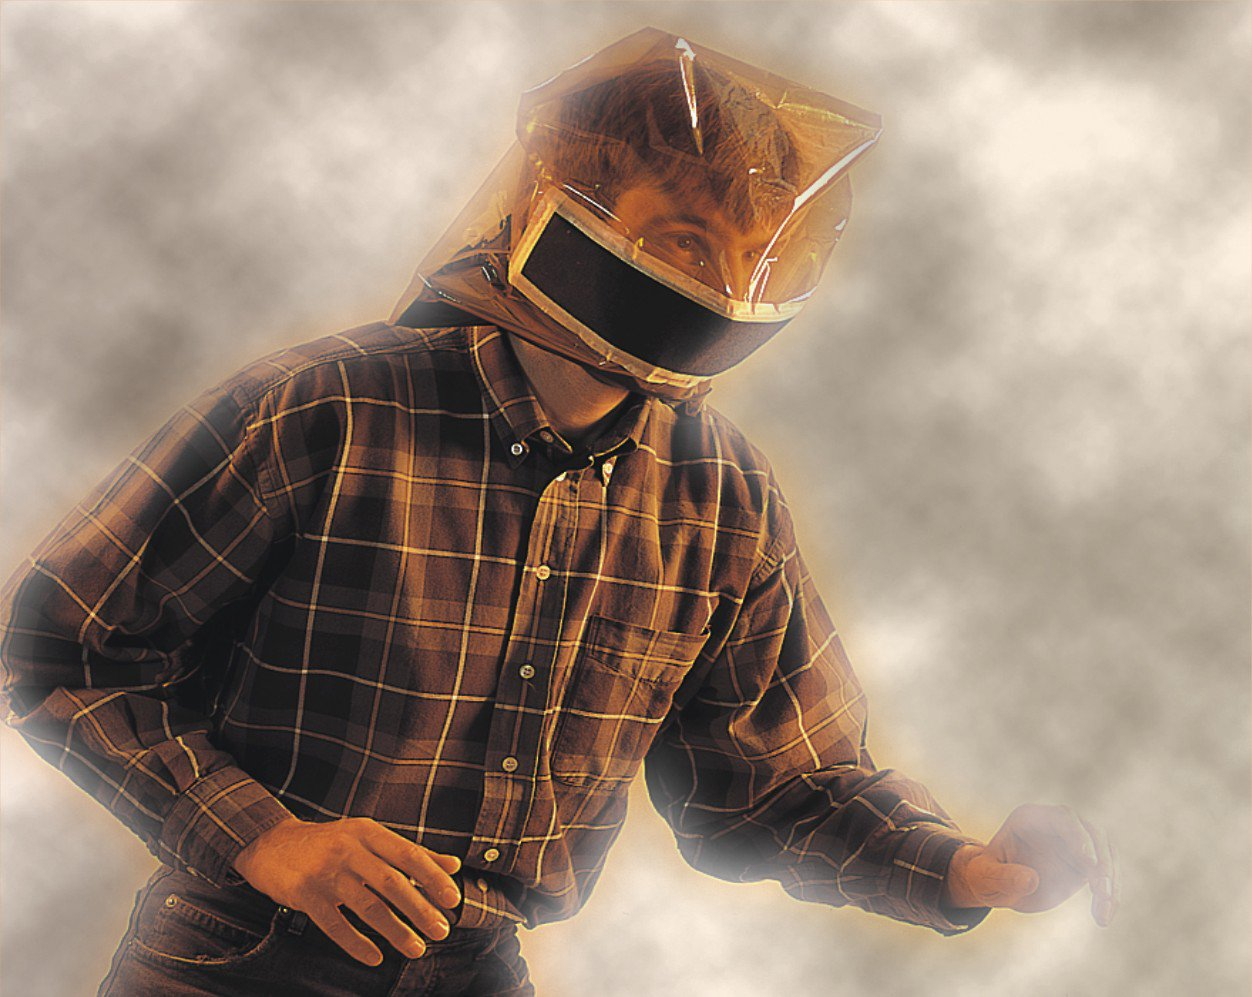 Pocket Smoke Mask for Fire Escape (4) by First Aid Global (Image #2)